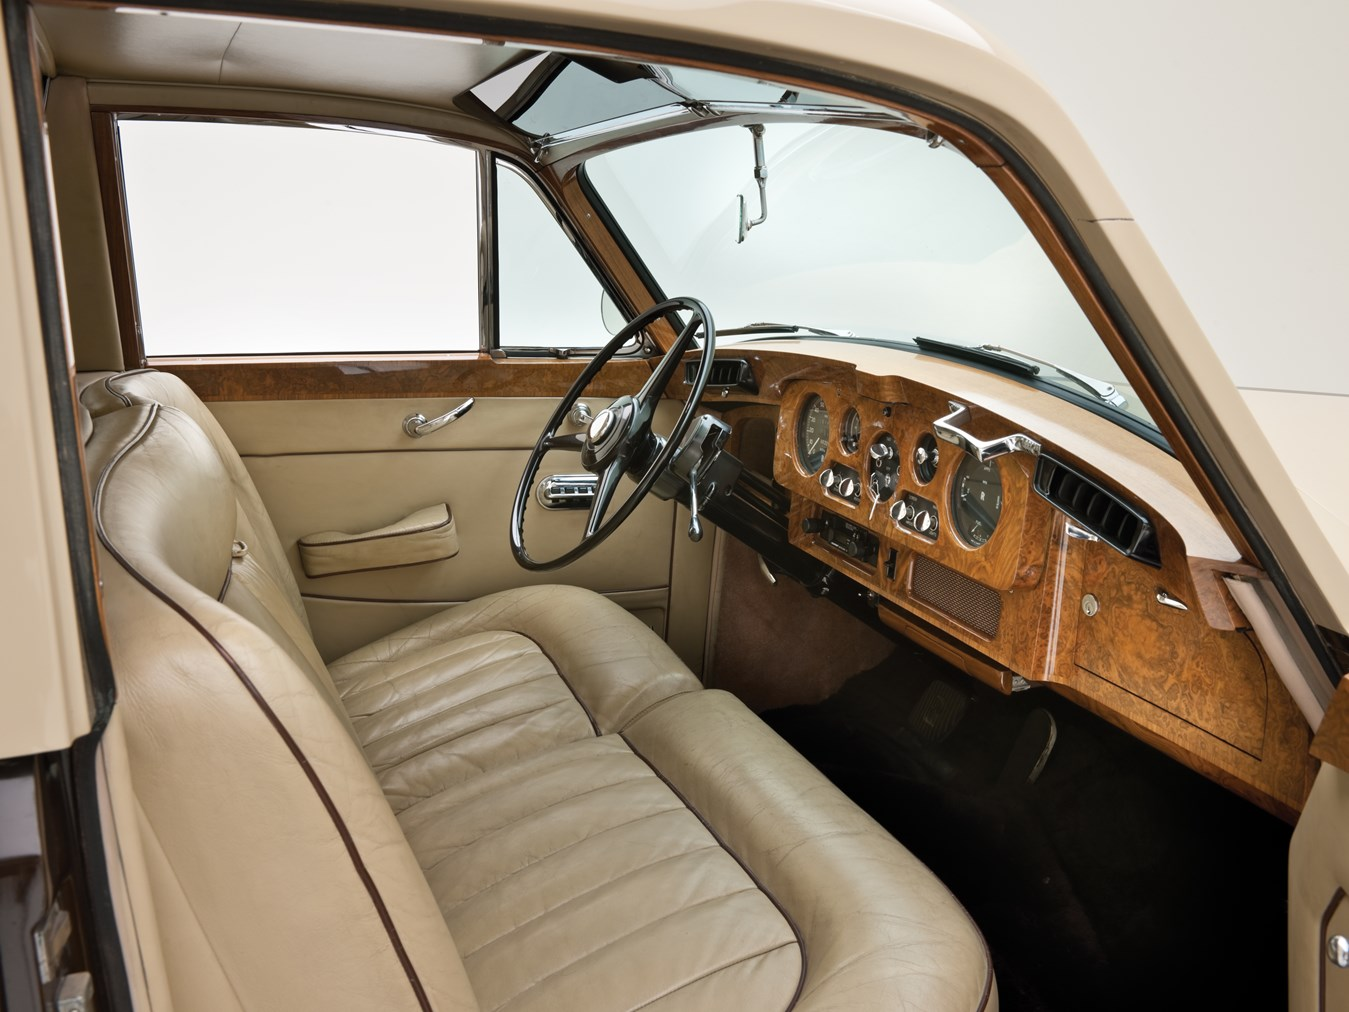 1966 Rolls-Royce Silver Cloud III Touring Limousine interior